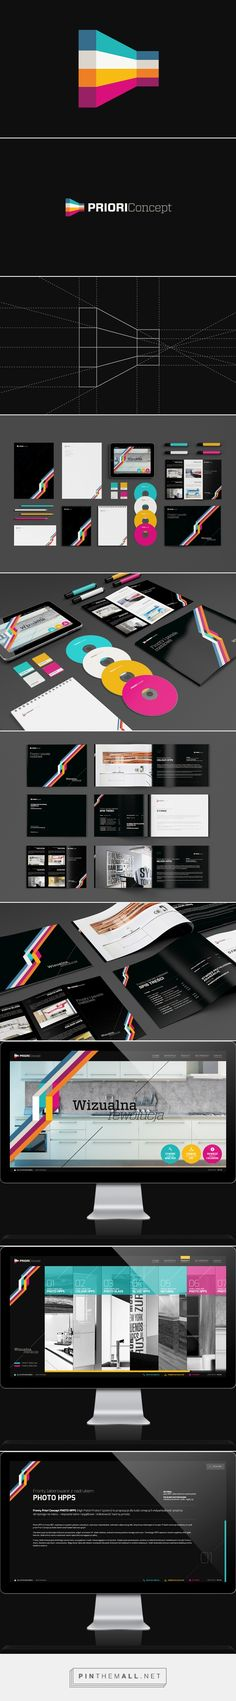 Professional and Modern Branding Projects by Necon